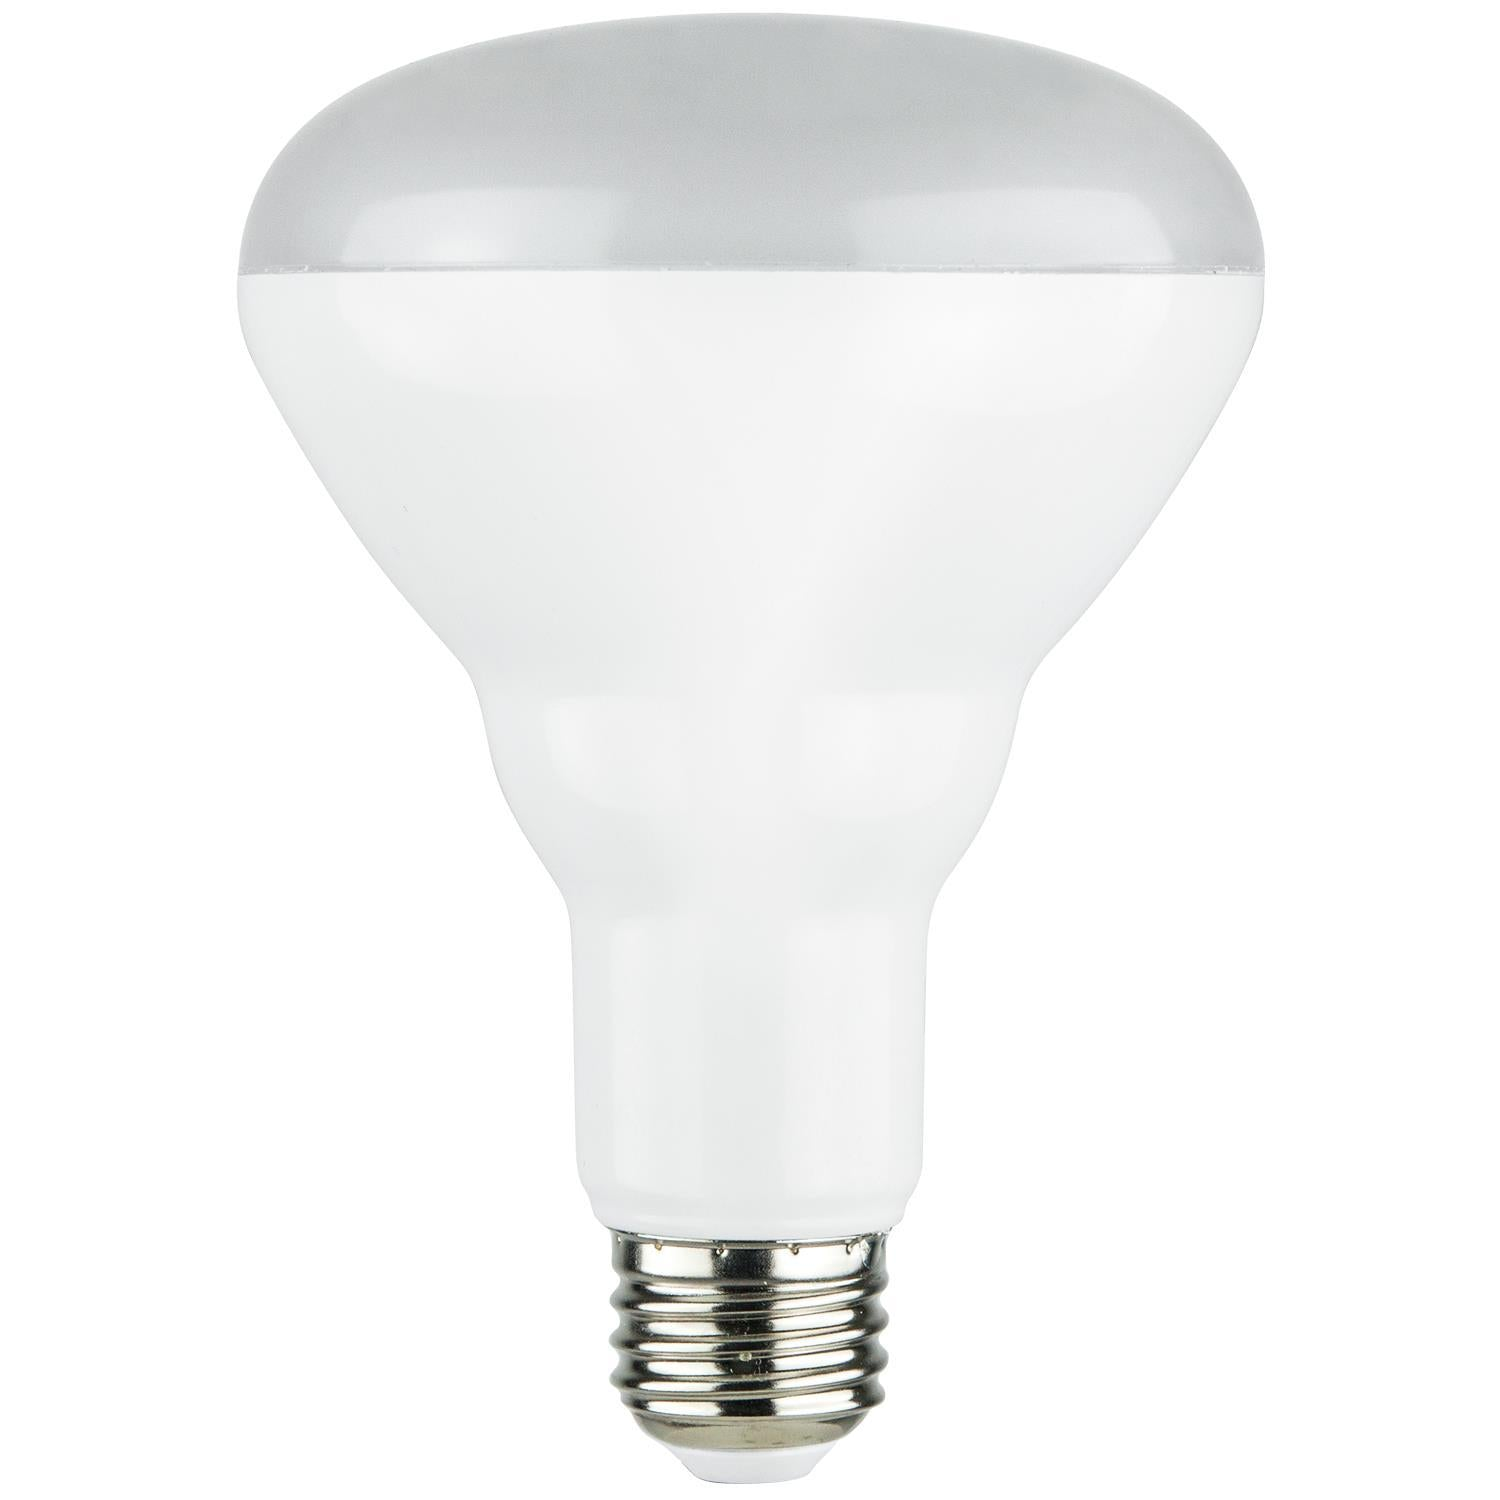 Sunlite 81158-SU 10 Watt BR30 Lamp Medium (E26) Base Warm White 2700K